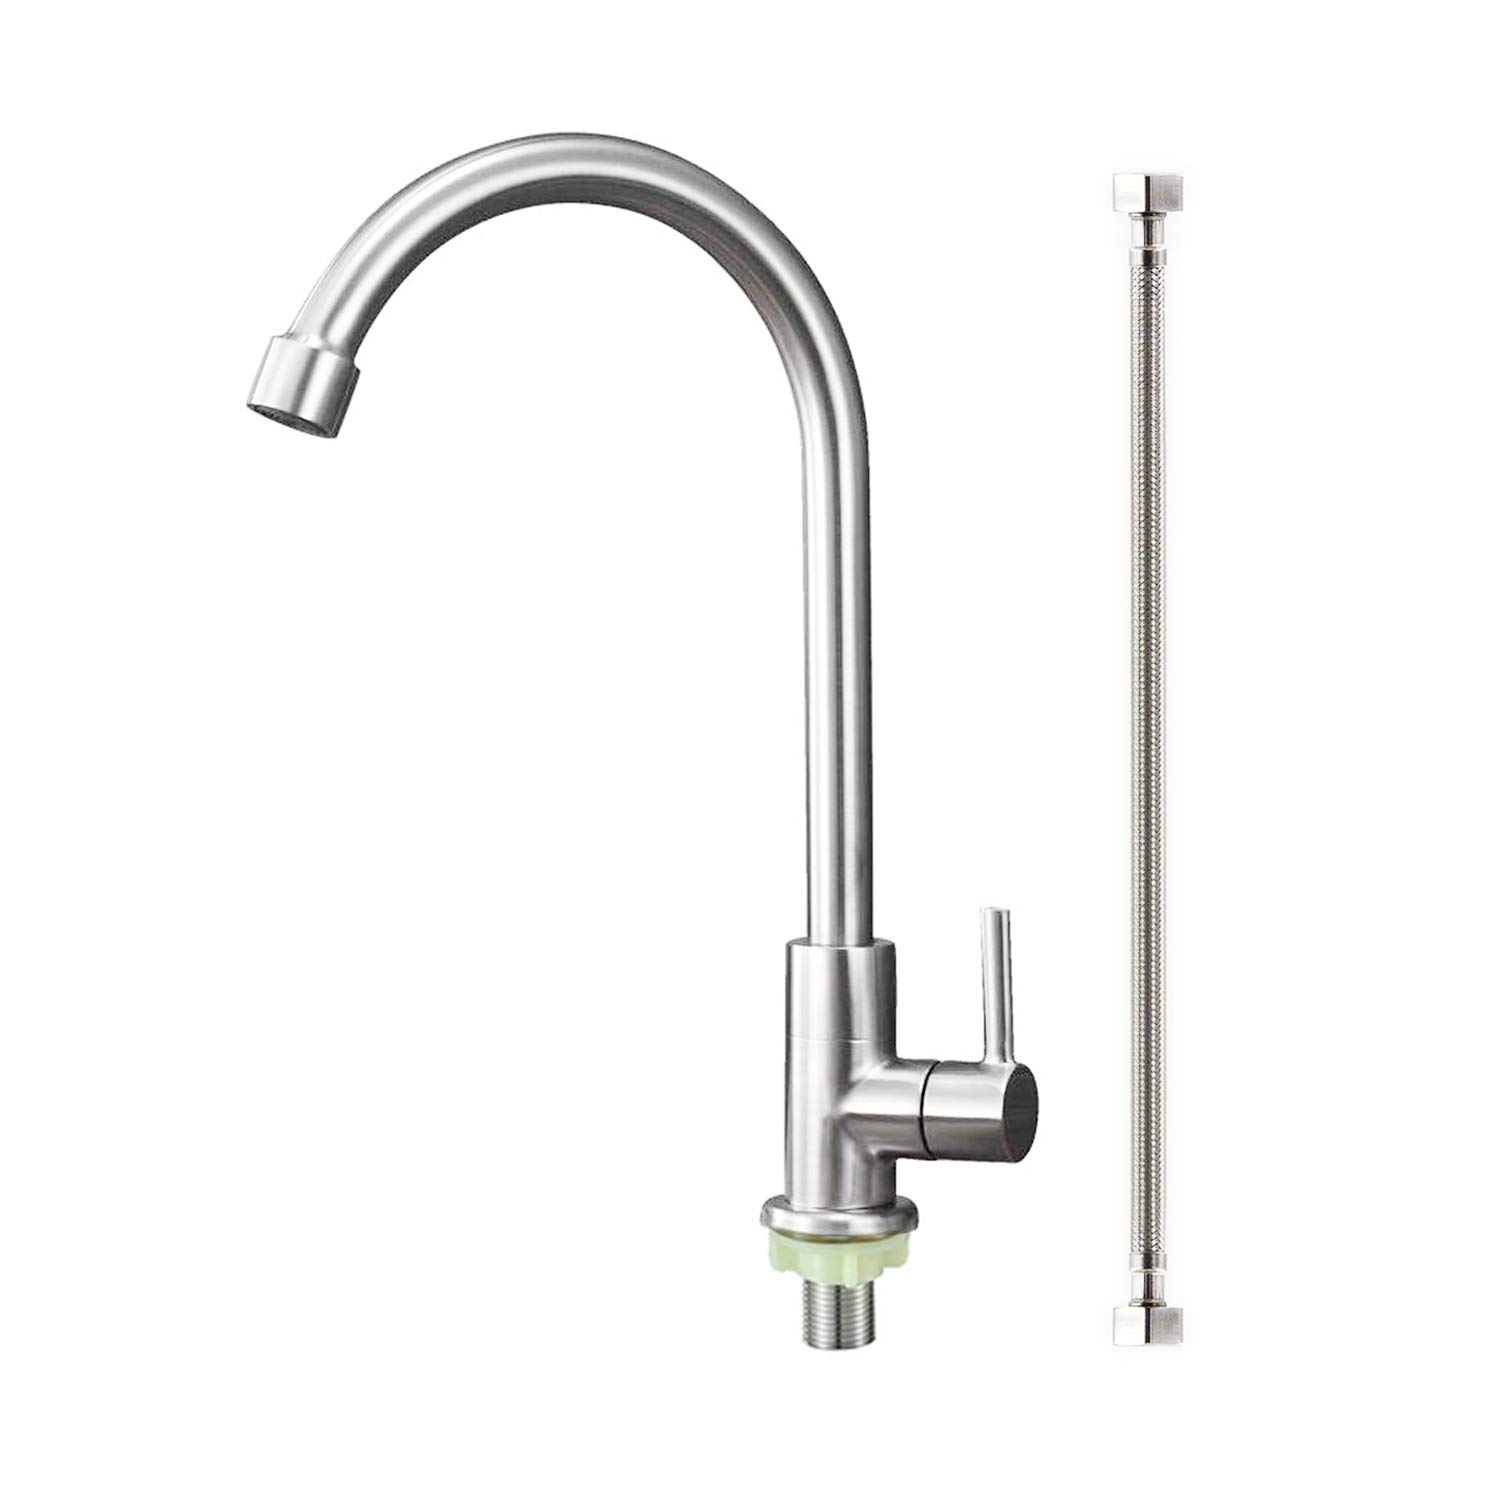 ORLEIMI Cold Water Only Kitchen Faucet Brushed Nickel Sink Faucet 304 Stainless Steel Lead Free Faucet High Arc